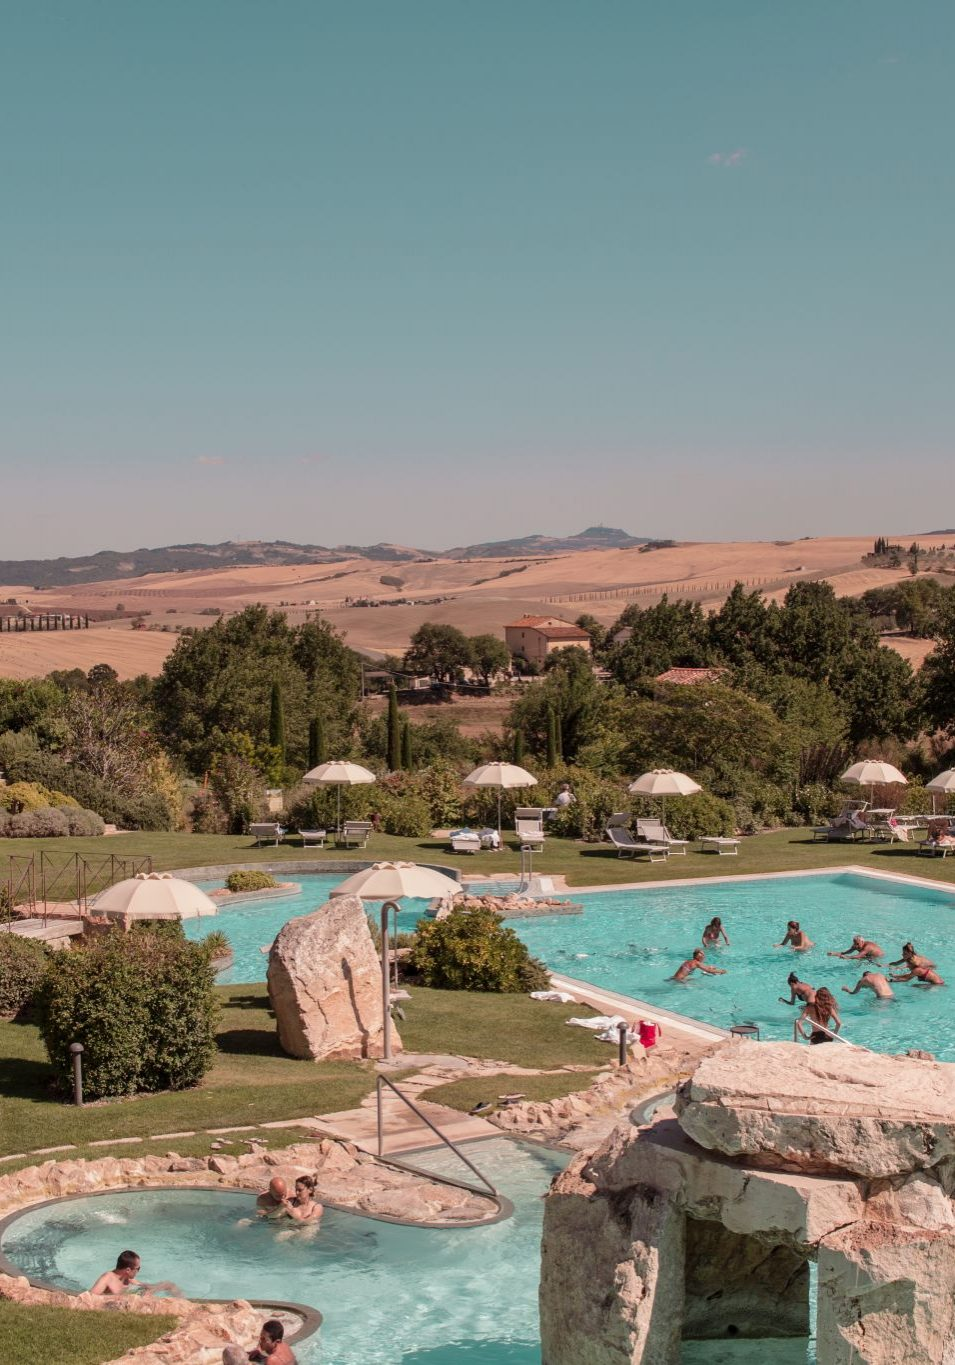 Adler Thermae Hotel Tuscany Hospitality Brand Hotel Travel Photography outdoor pool exercise class